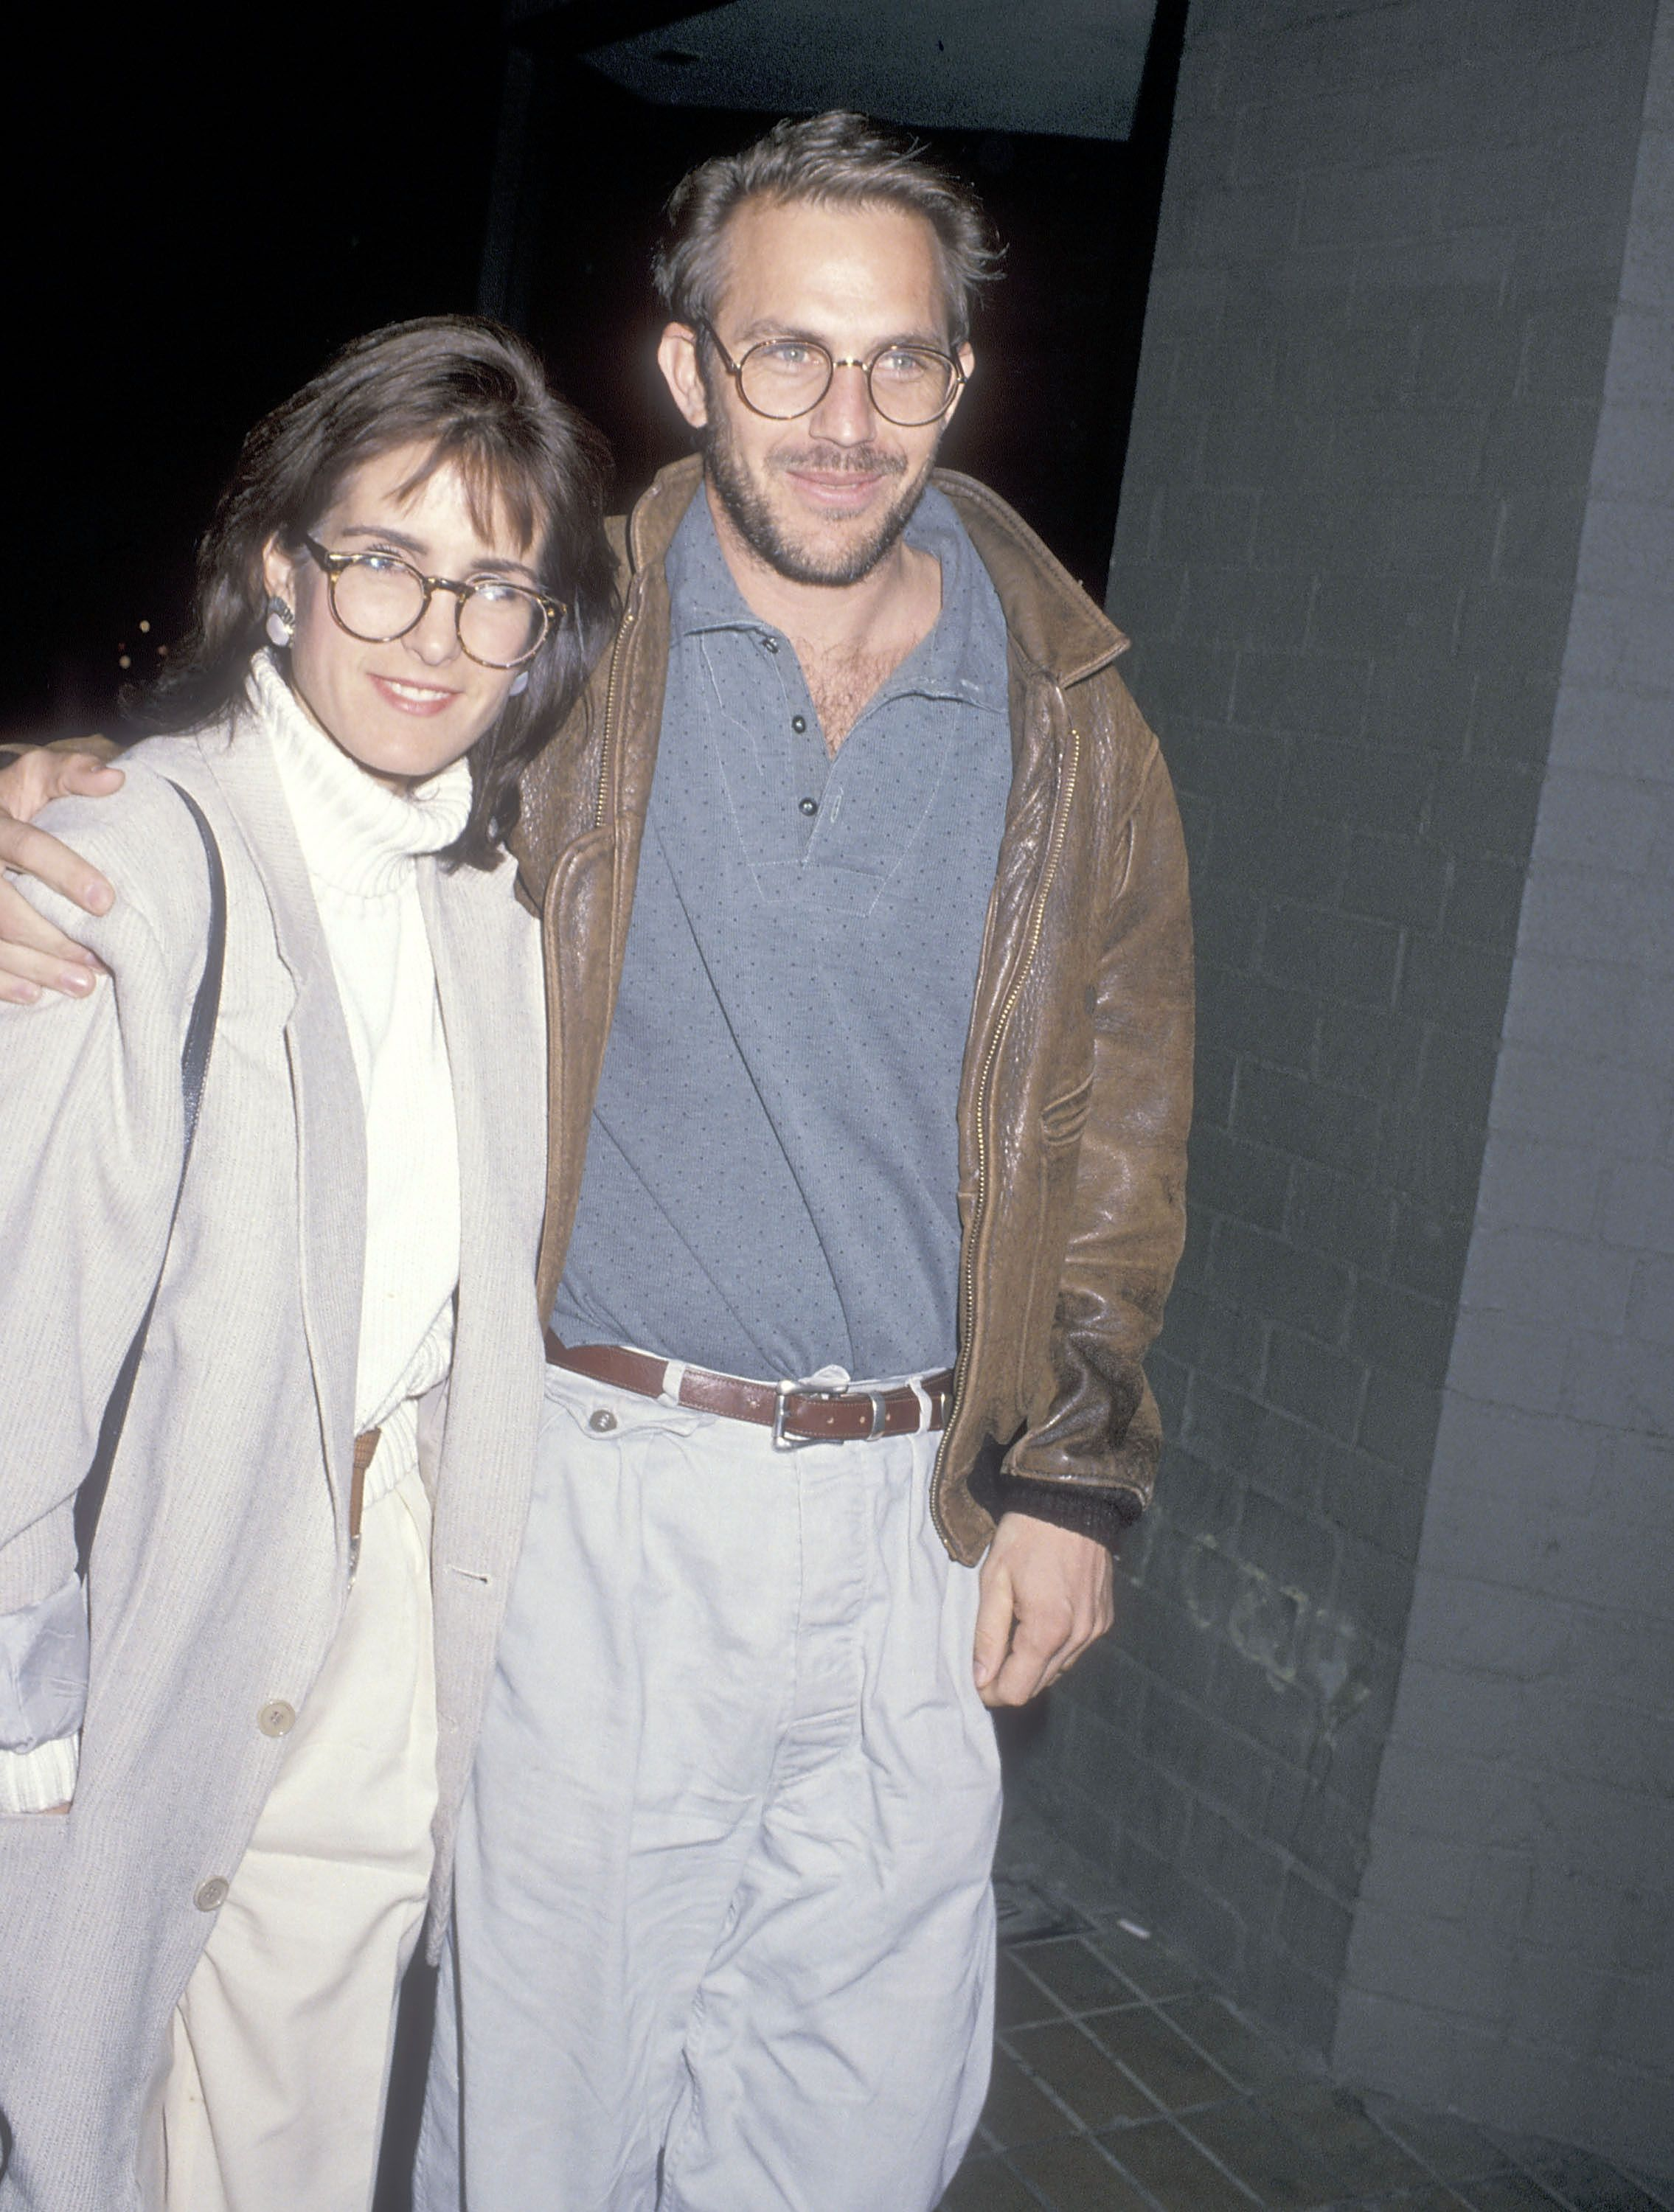 """Kevin Costner and wife Cindy Costner attend a performance of the play """"Hurlyburly"""" on January 13, 1989 at the Westwood Playhouse in Westwood, California. 